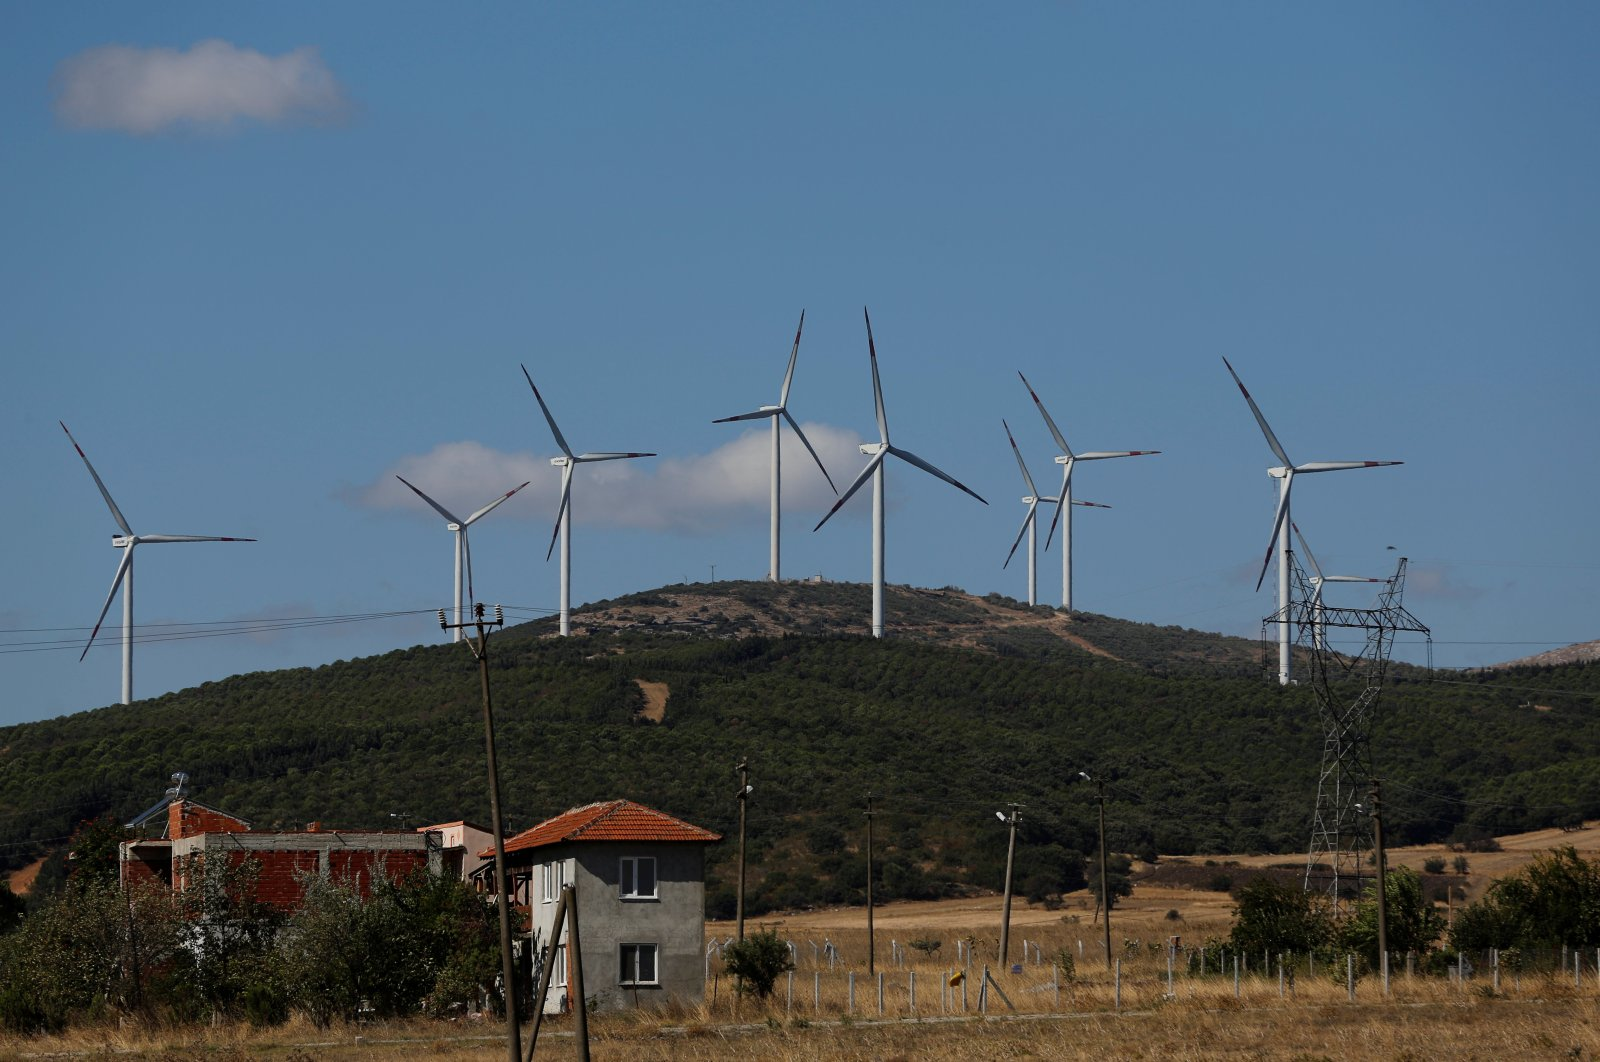 Wind turbines used to generate electricity are seen near the town of Susurluk in Balıkesir province, Turkey, Aug. 31, 2017. (Reuters Photo)